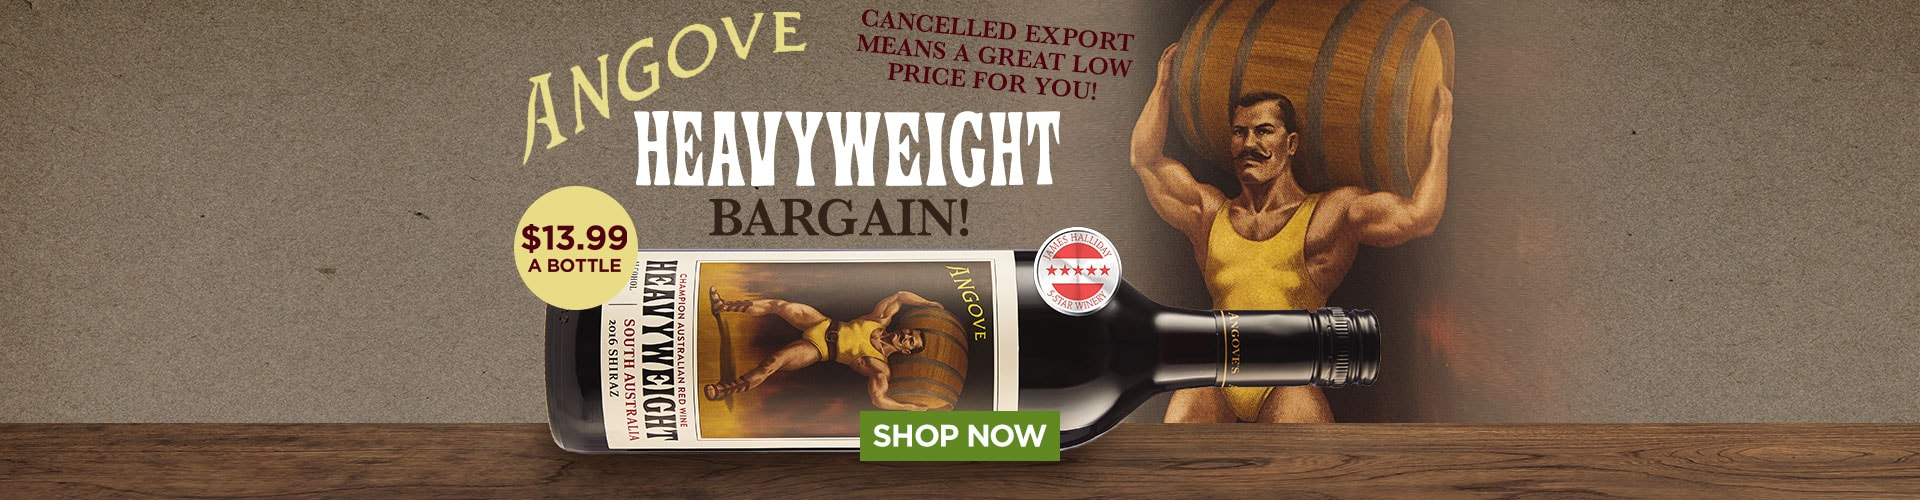 Angove HEAVYWEIGHT Bargain - Cancelled export means a great low price for you! $13.99 a bottle, SAVE $72 - SHOP NOW